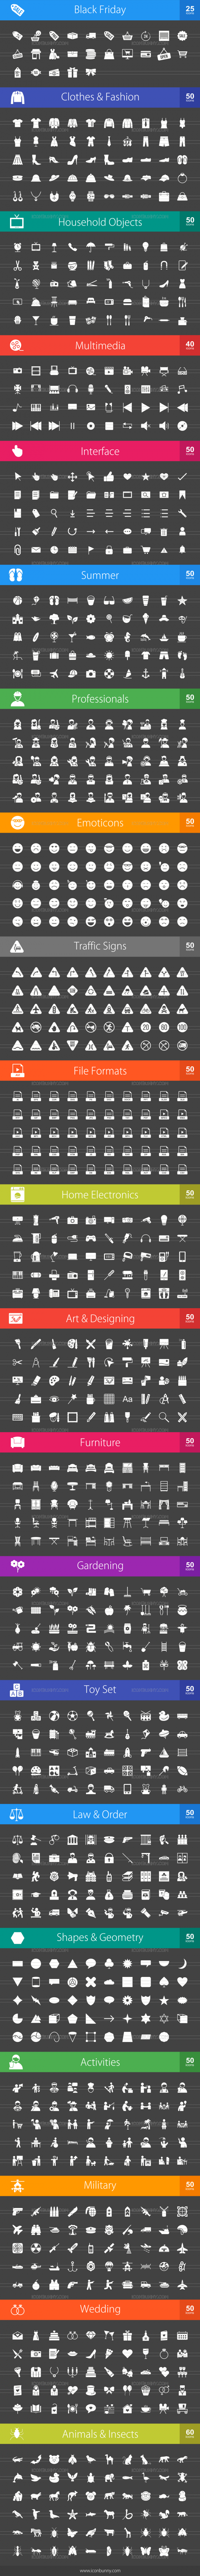 1025 Glyph Inverted Icons Bundle - Preview - IconBunny